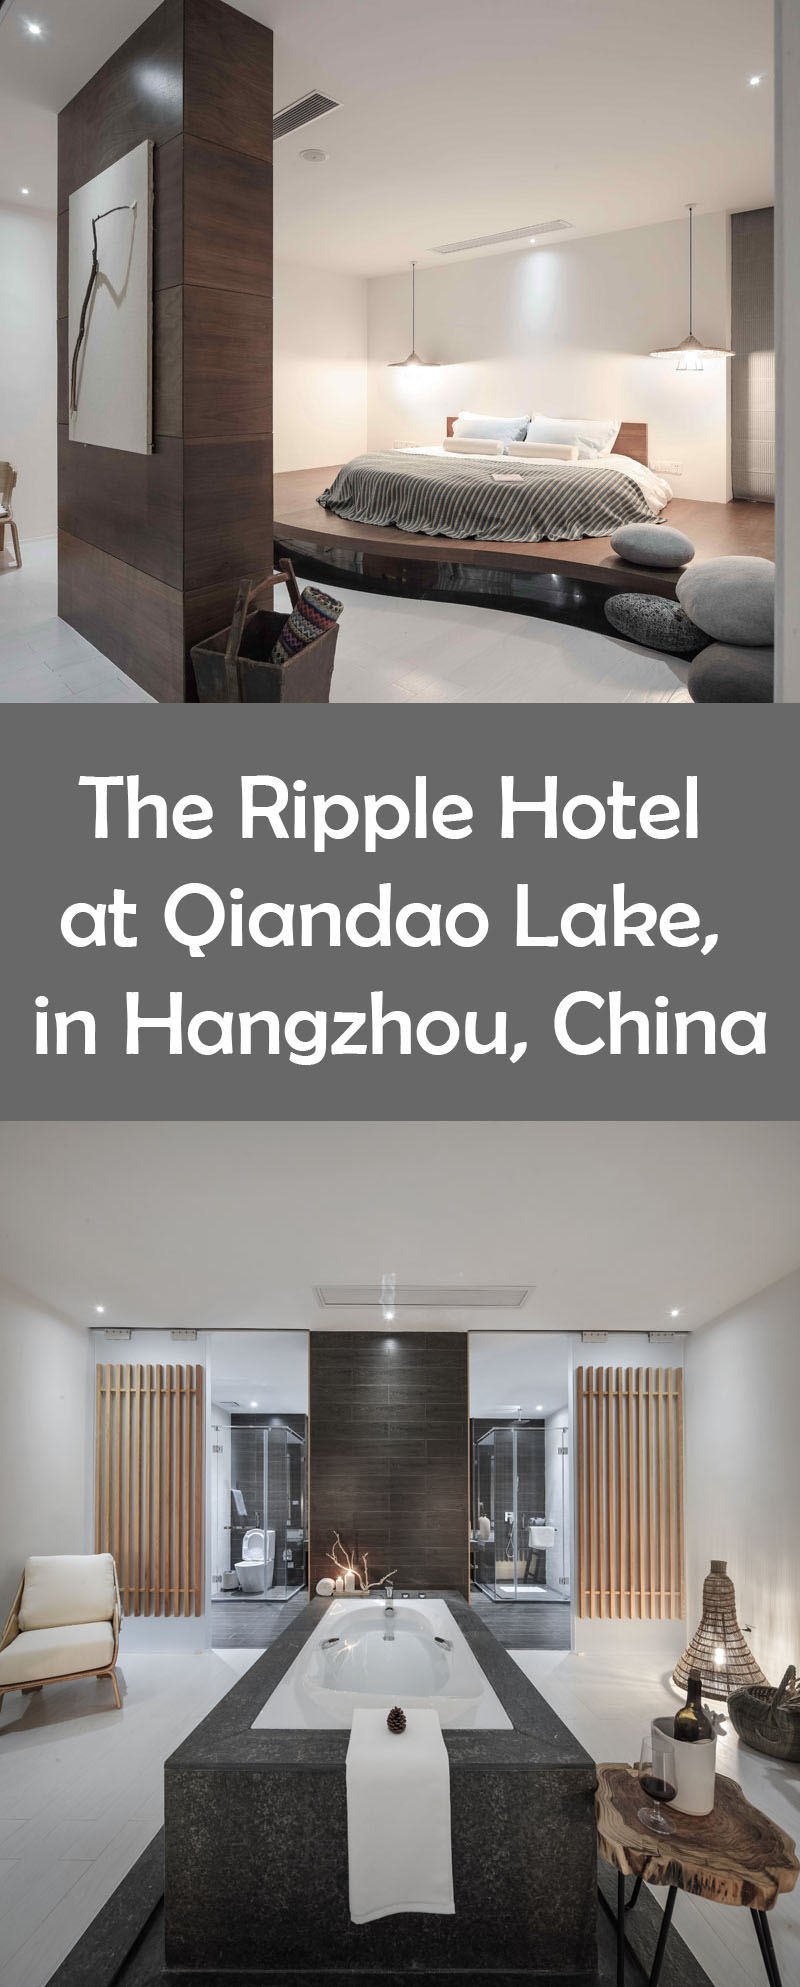 23 Pictures Of The Ripple Hotel At Qiandao Lake, In Hangzhou, China